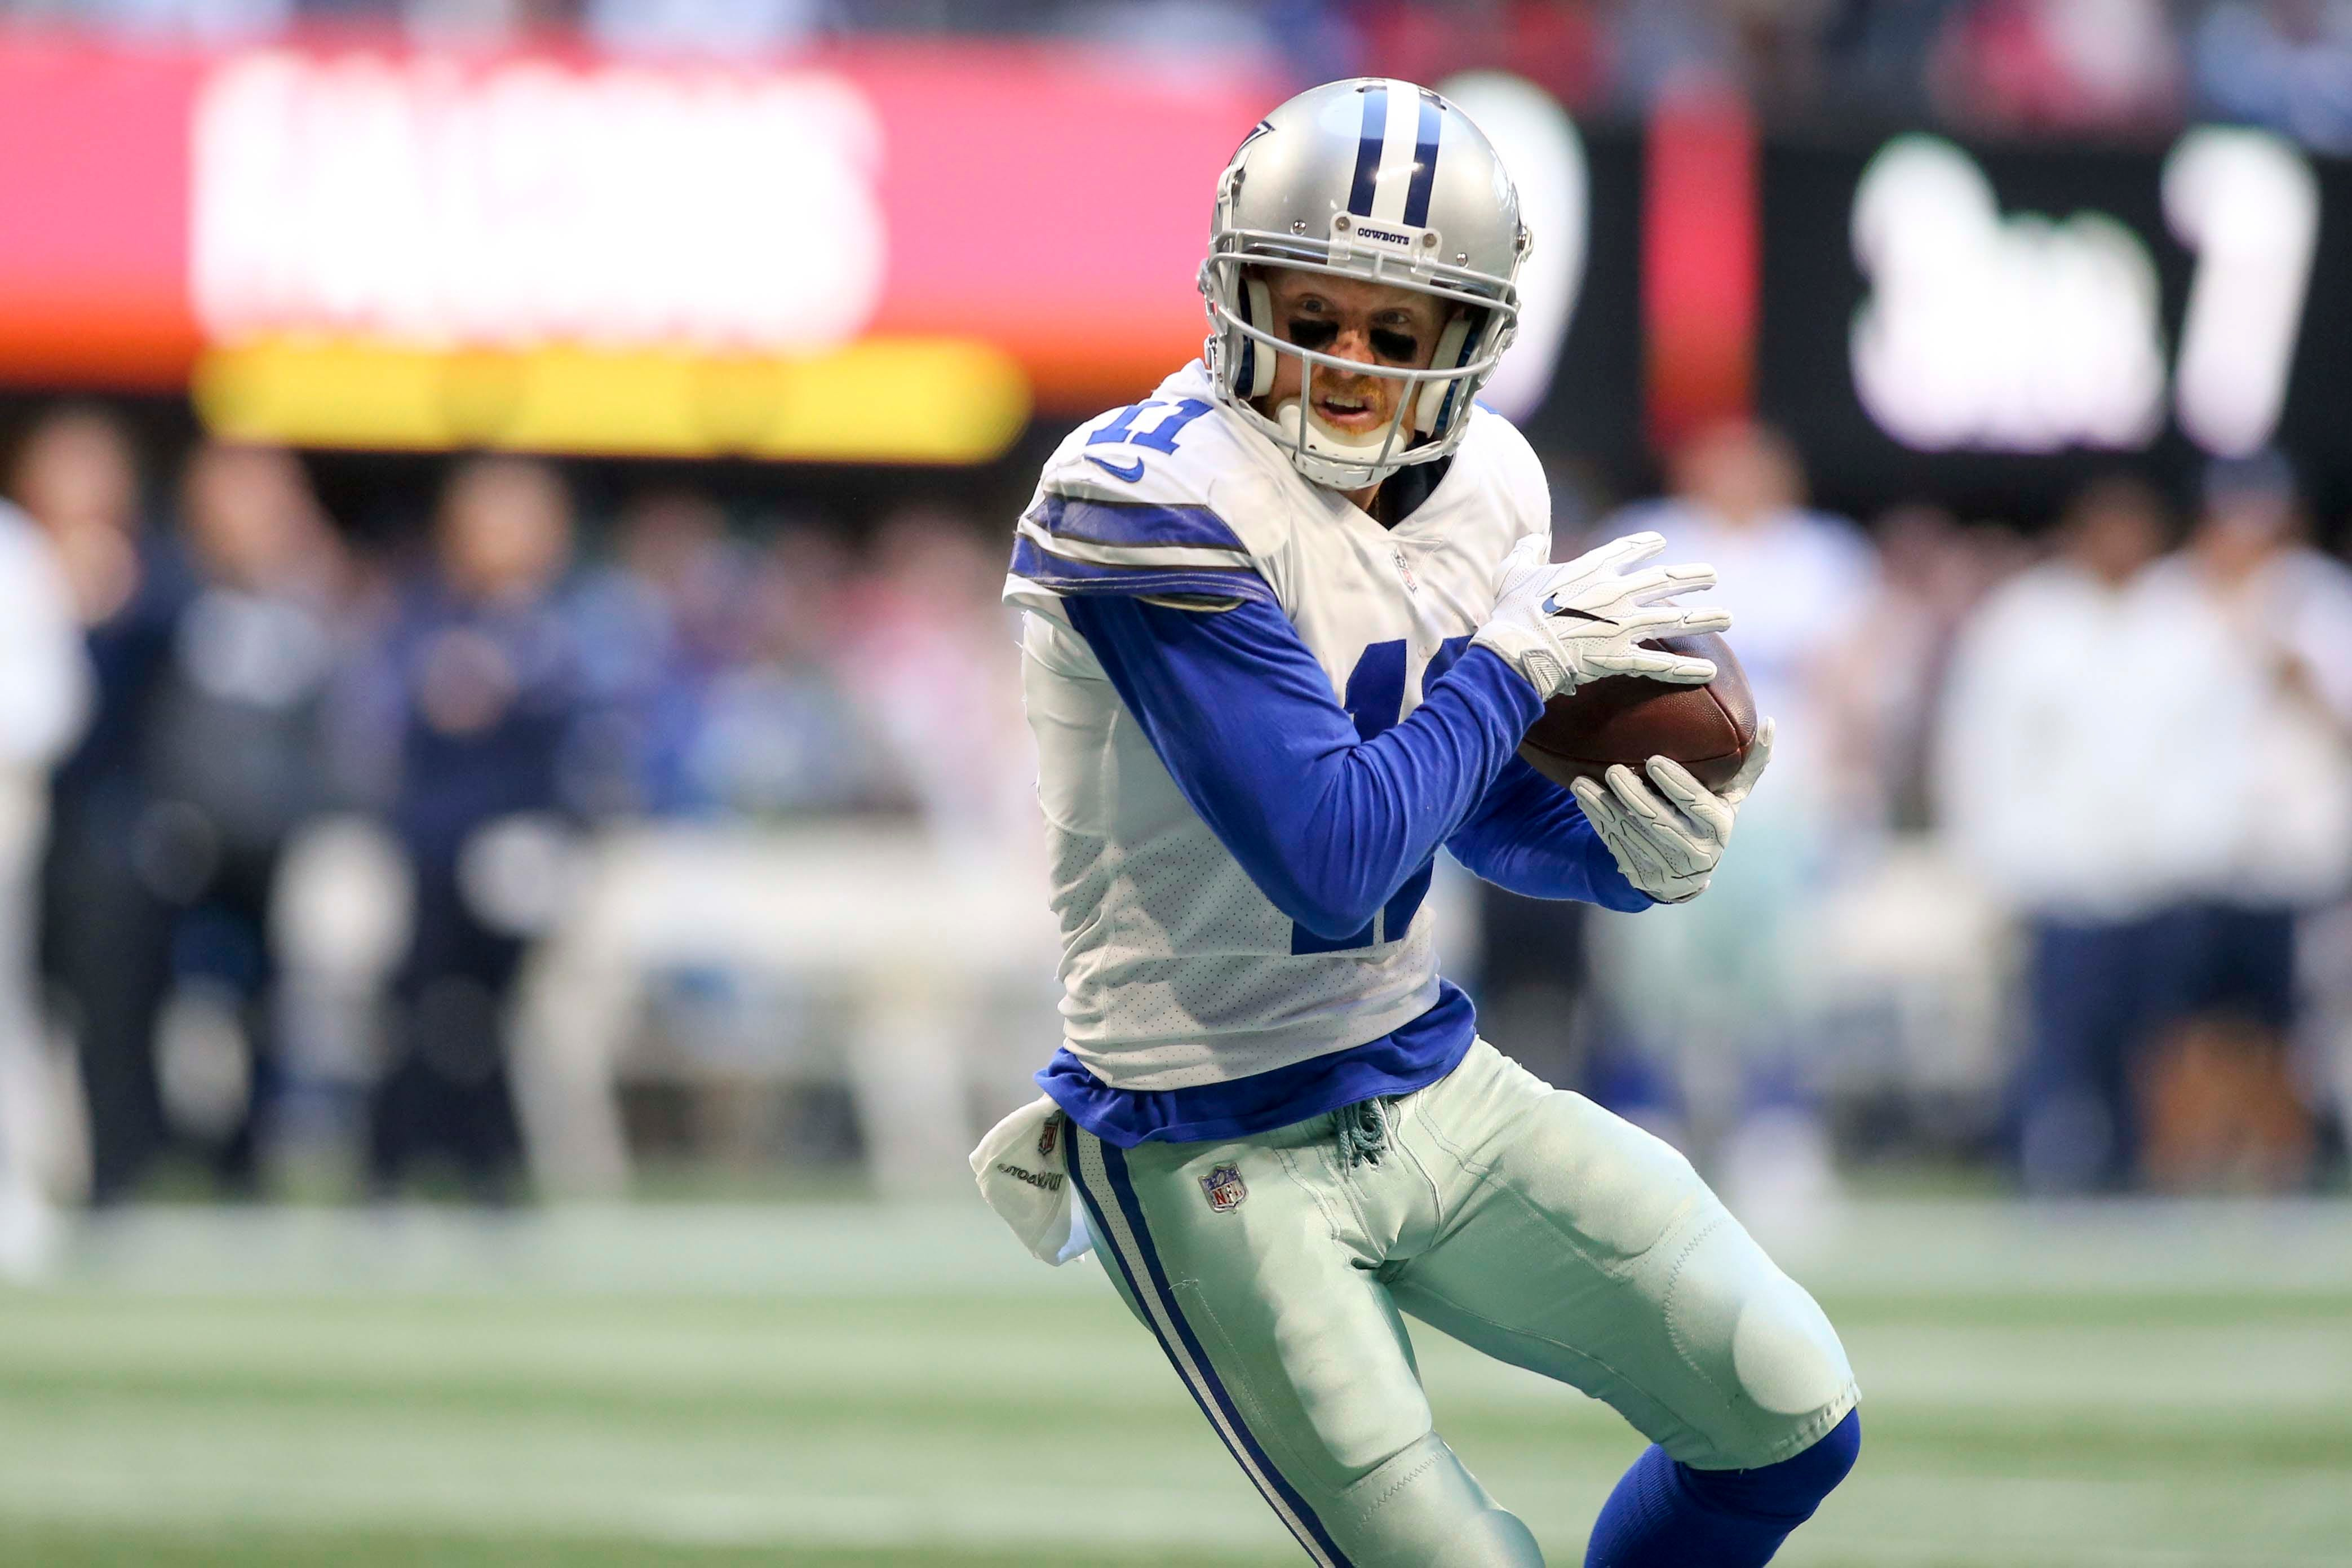 Cole Beasley leaving Dallas Cowboys to sign with Buffalo Bills